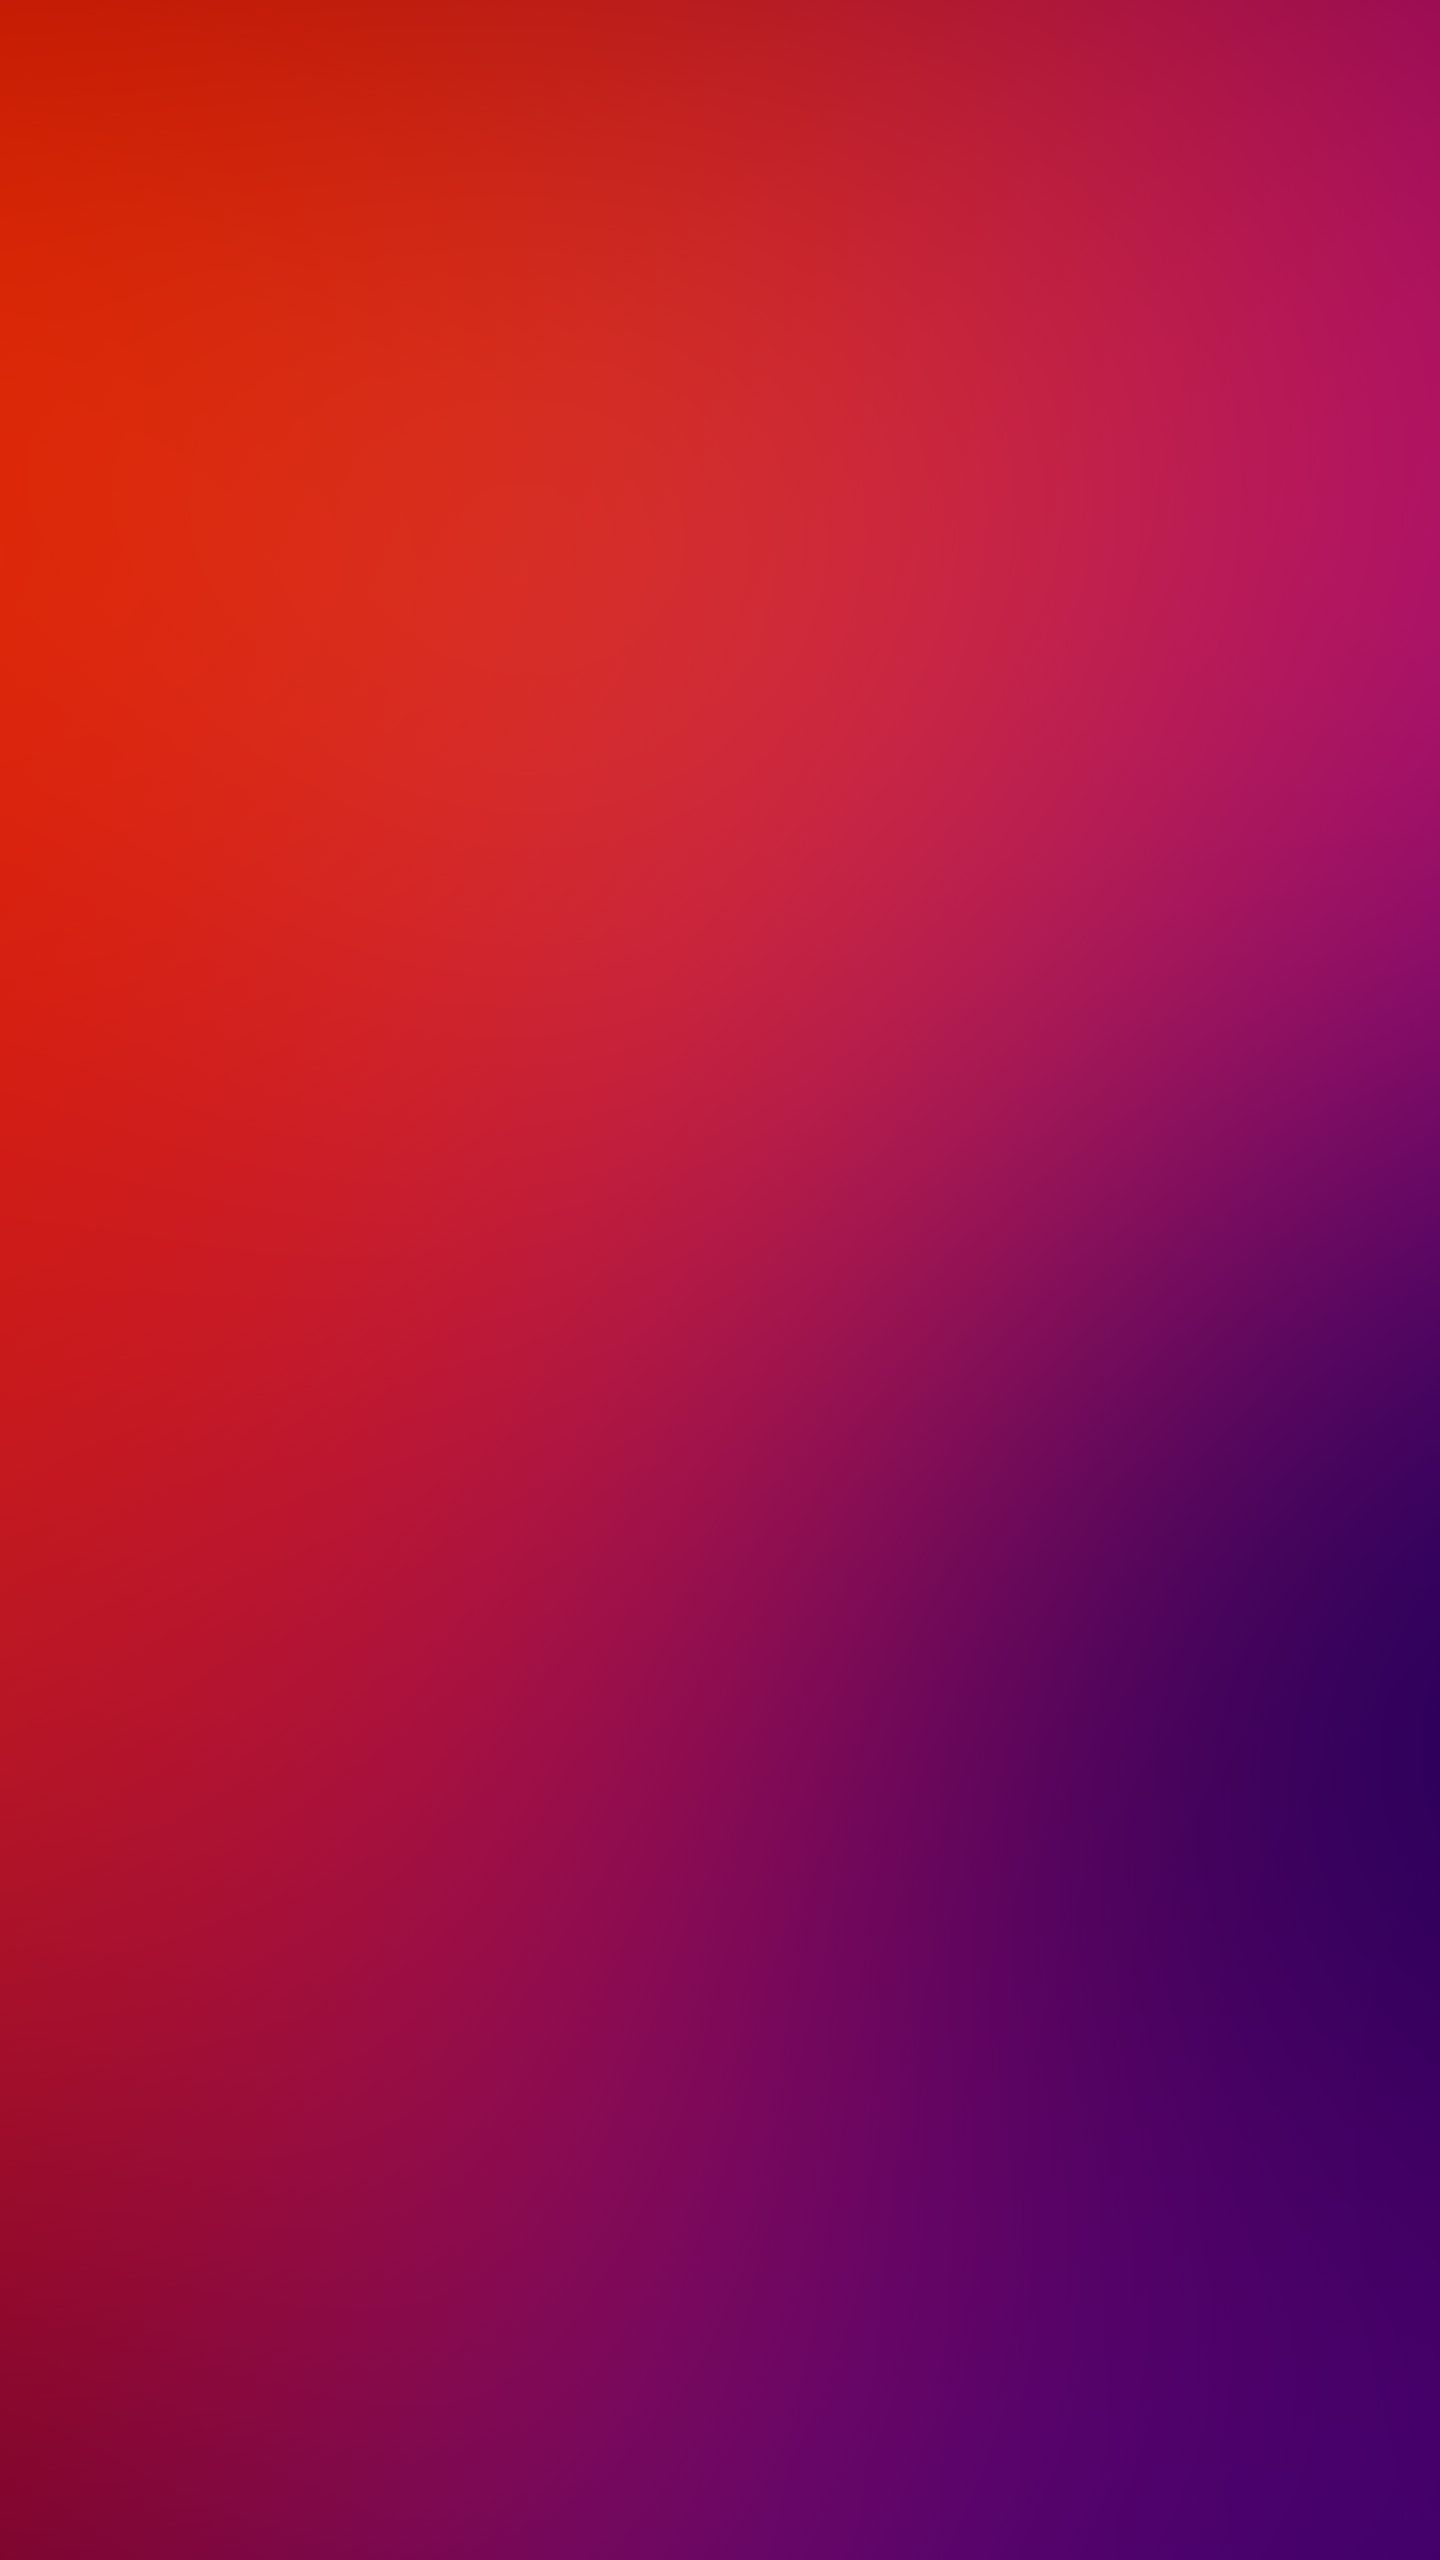 Free Minimalistic Wallpaper For Screens Aspect Ratio 16 9 Wallpaper Abstract Screen Display Bac Red Texture Background Ombre Wallpapers Red Wallpaper